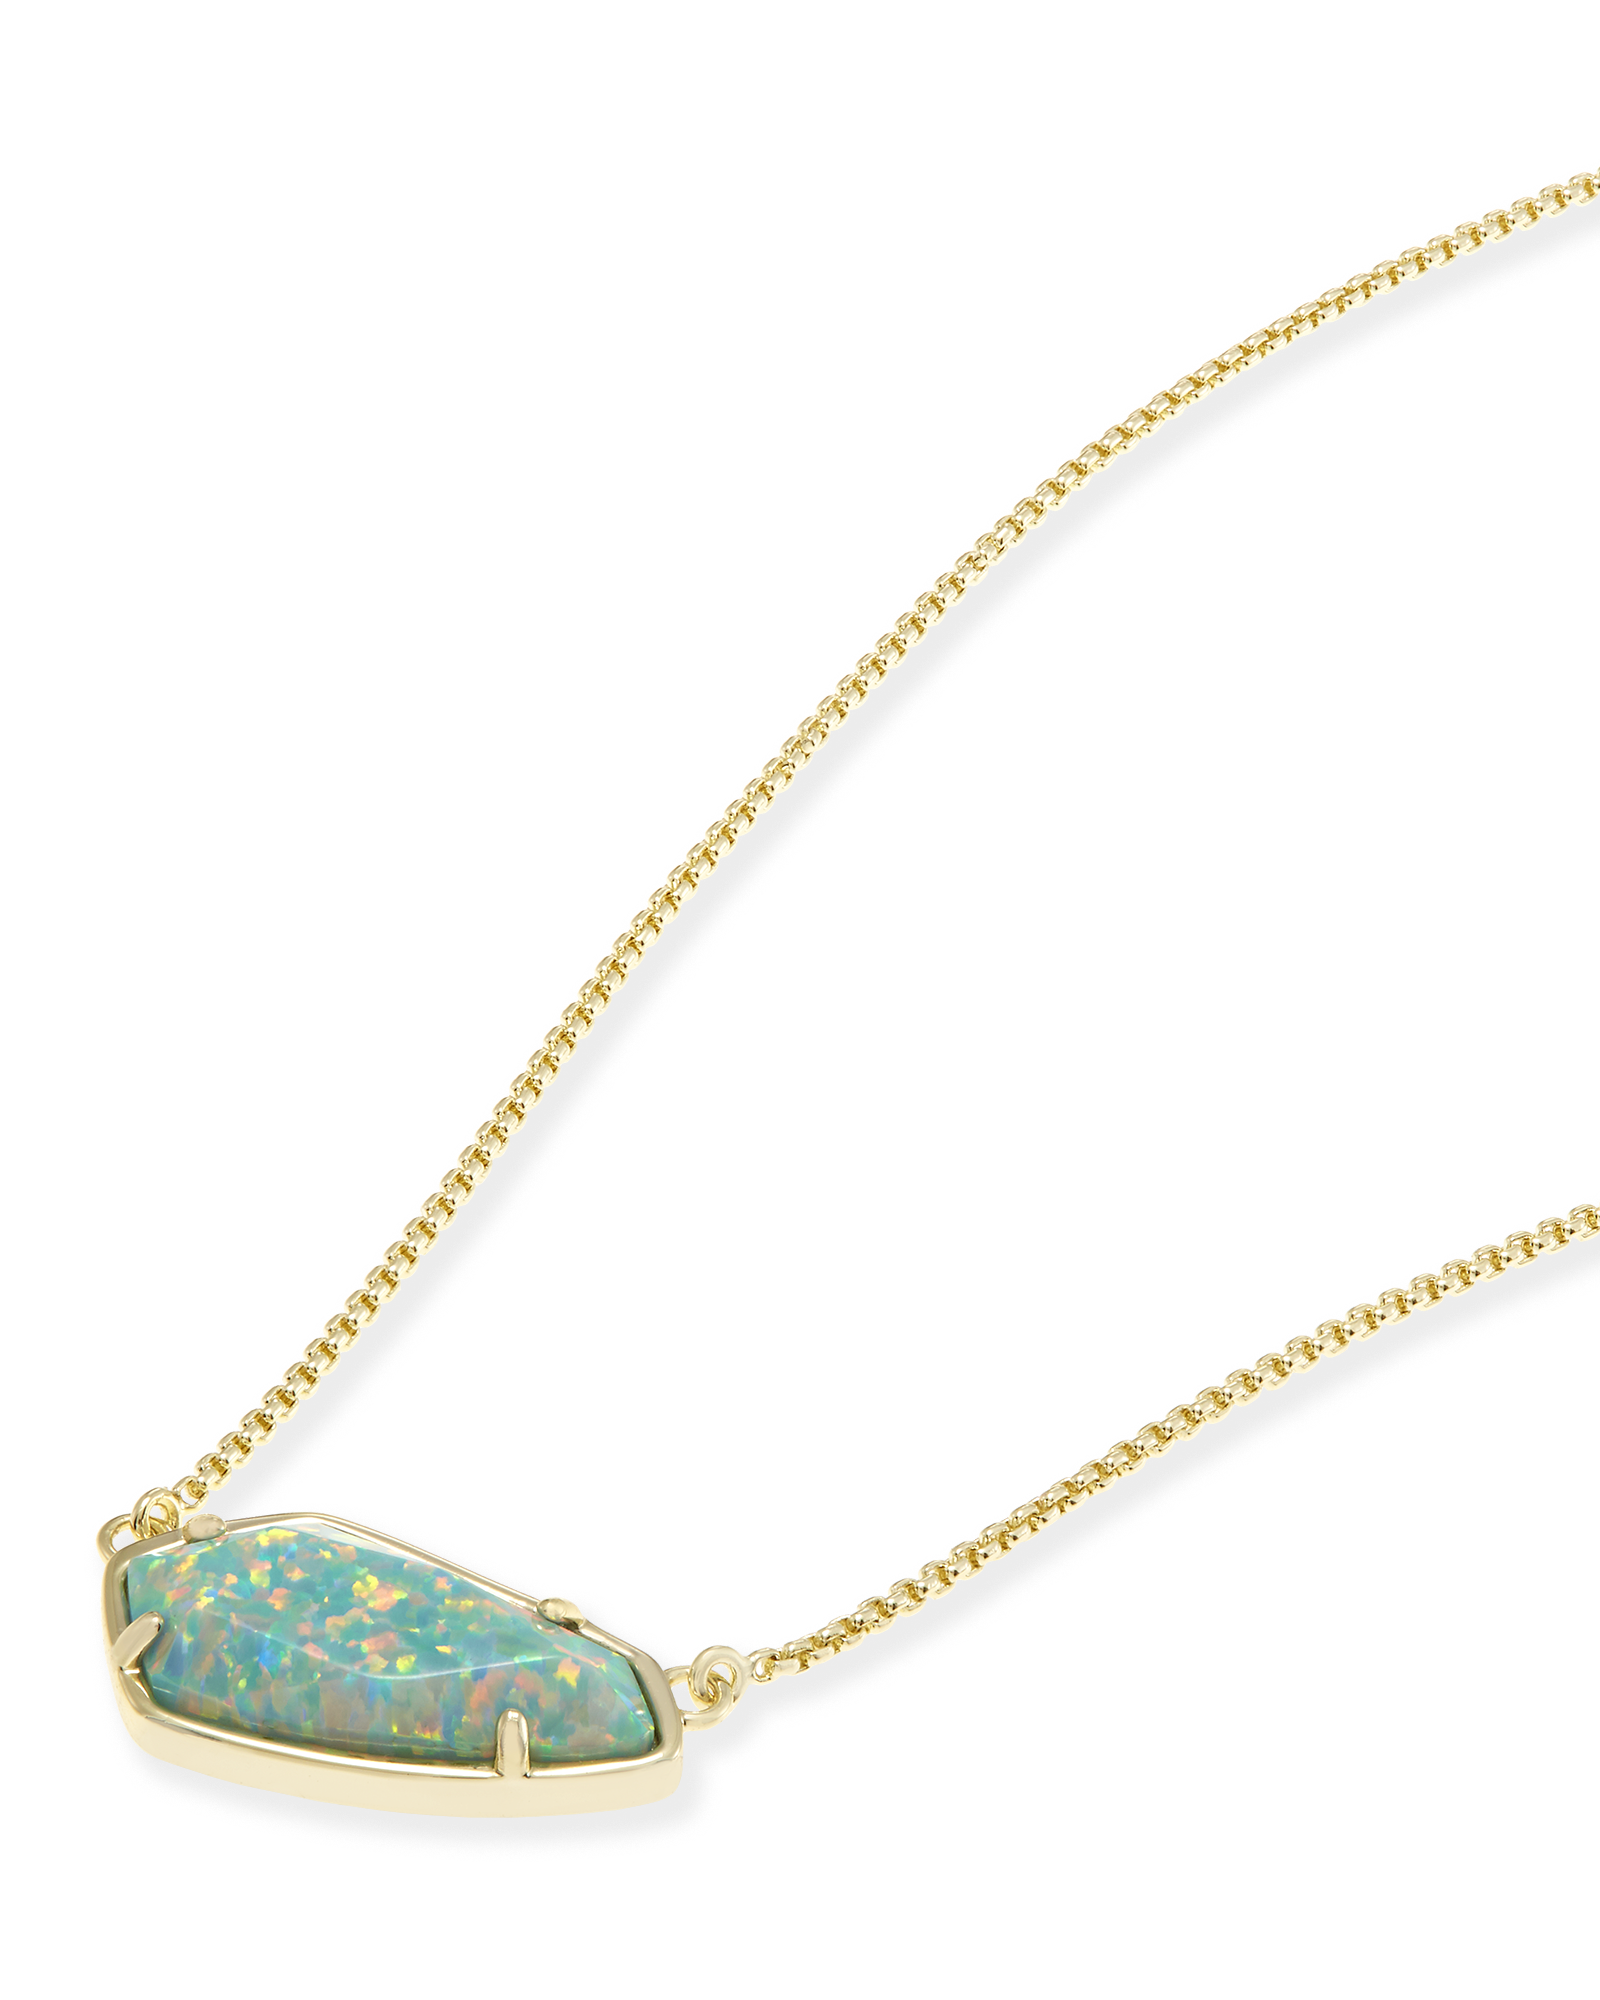 Cami Necklace in Aqua Kyocera Opal